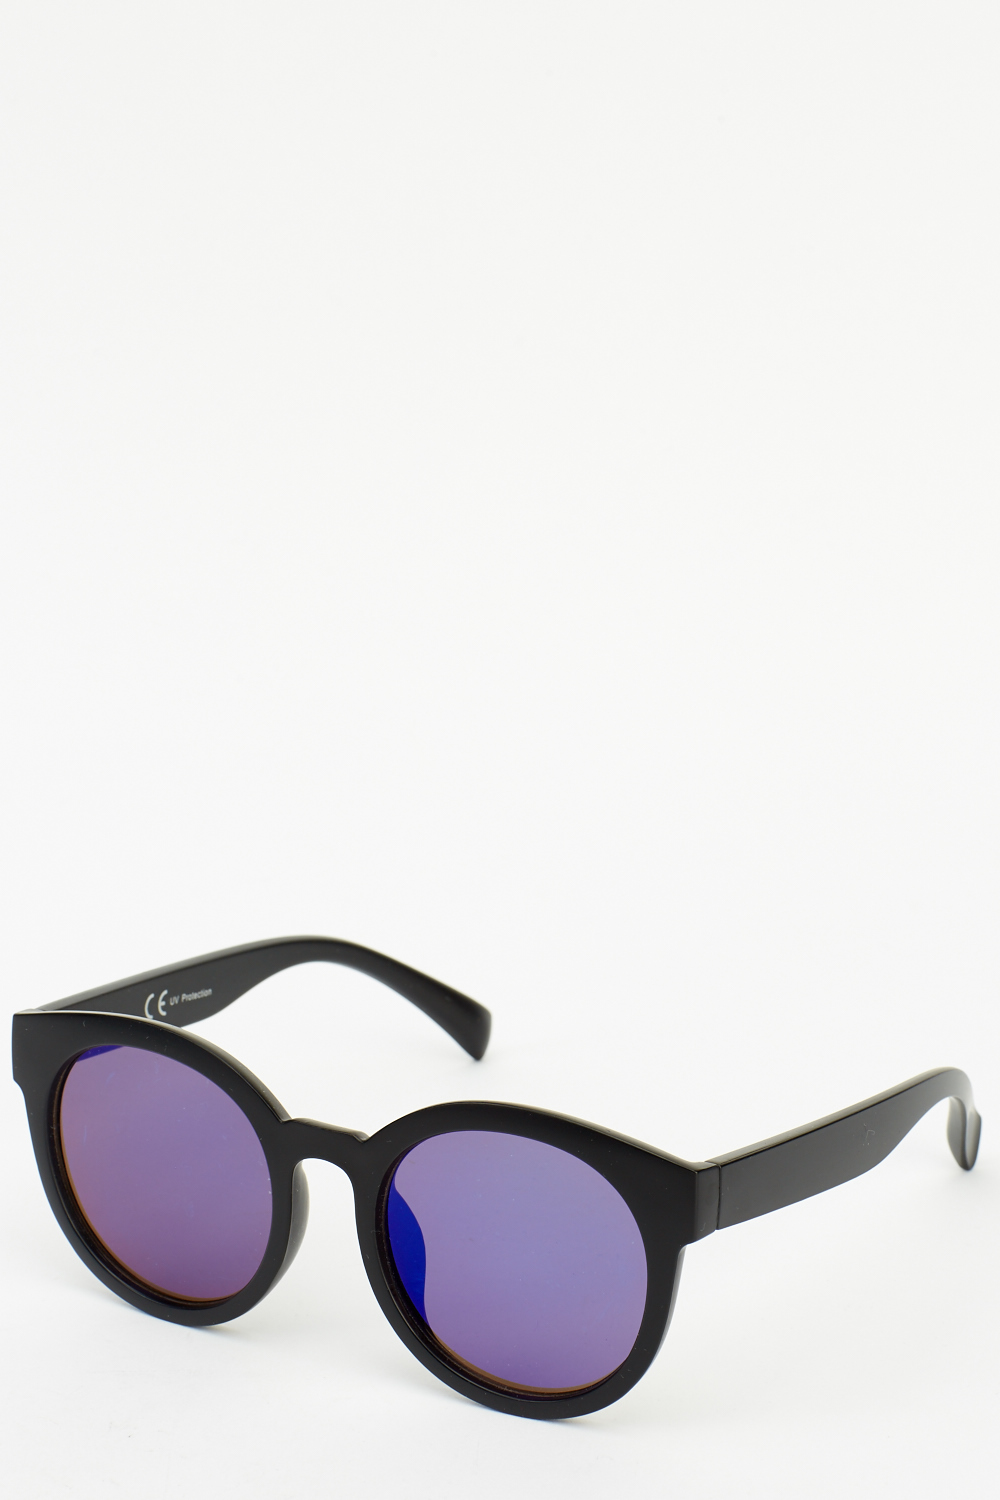 Wide Frame Sunglasses - Just £5